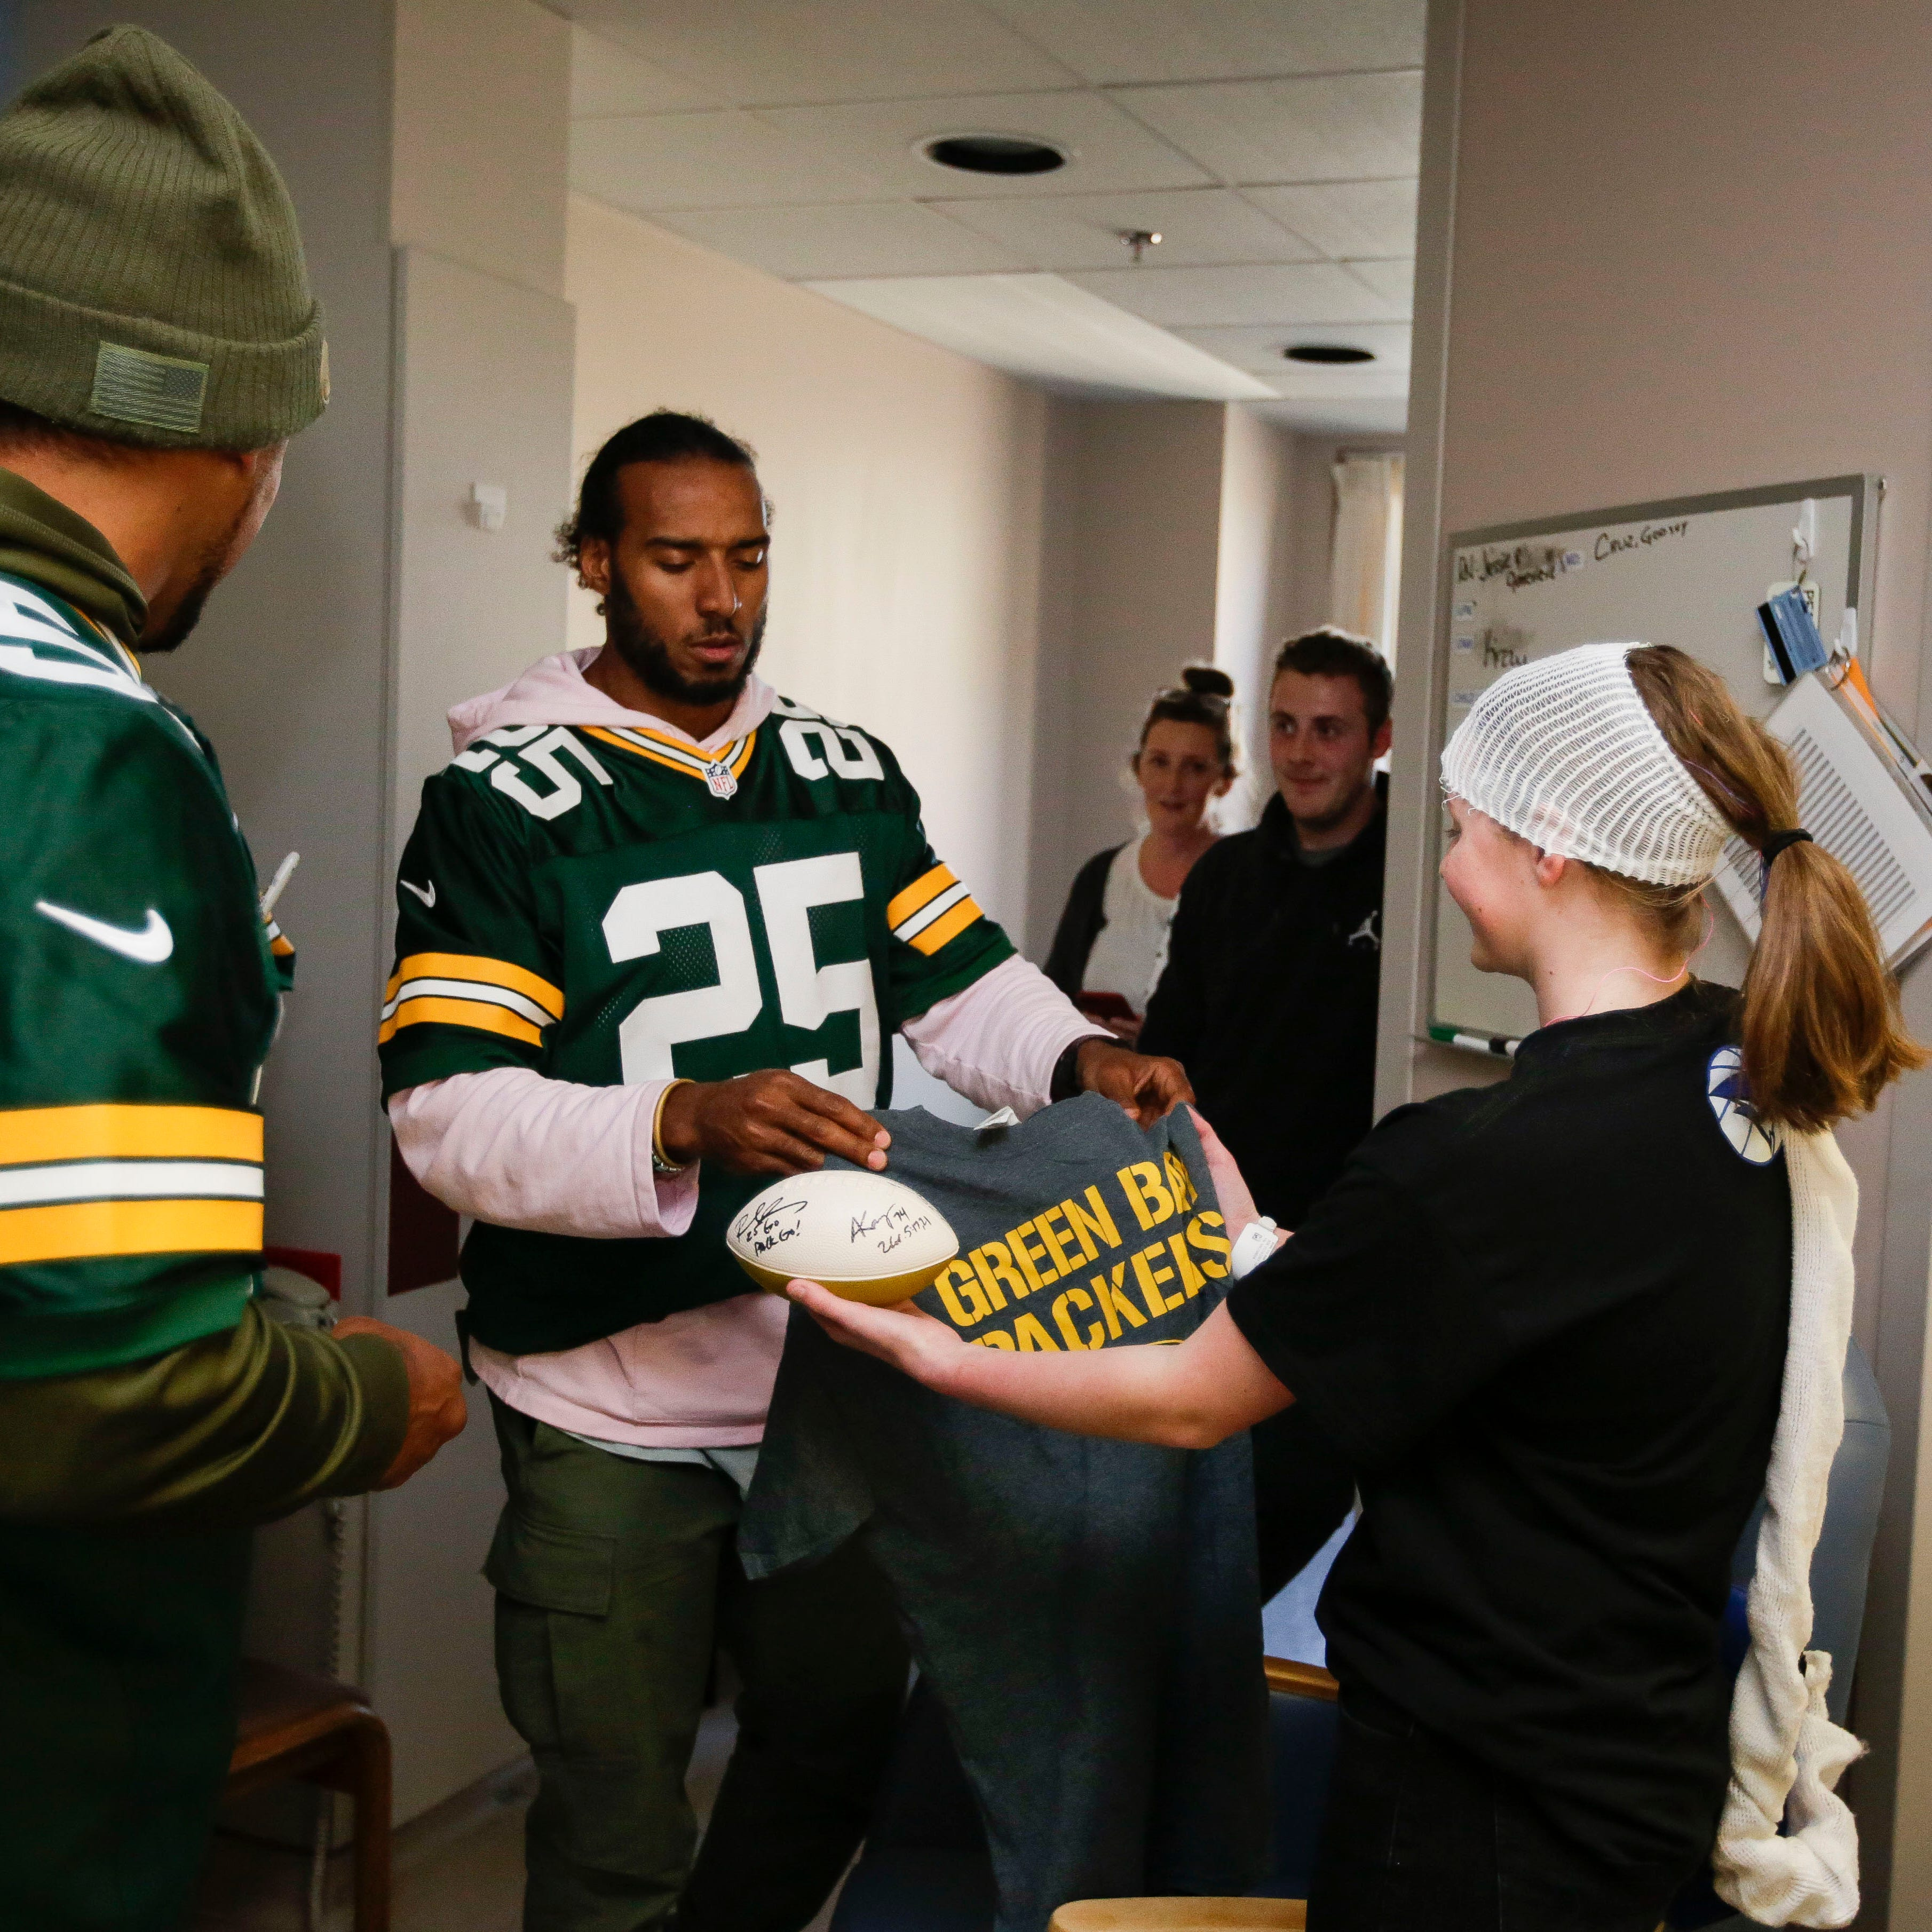 Packers alumni surprise patients at Marshfield Children's Hospital during Tailgate Tour